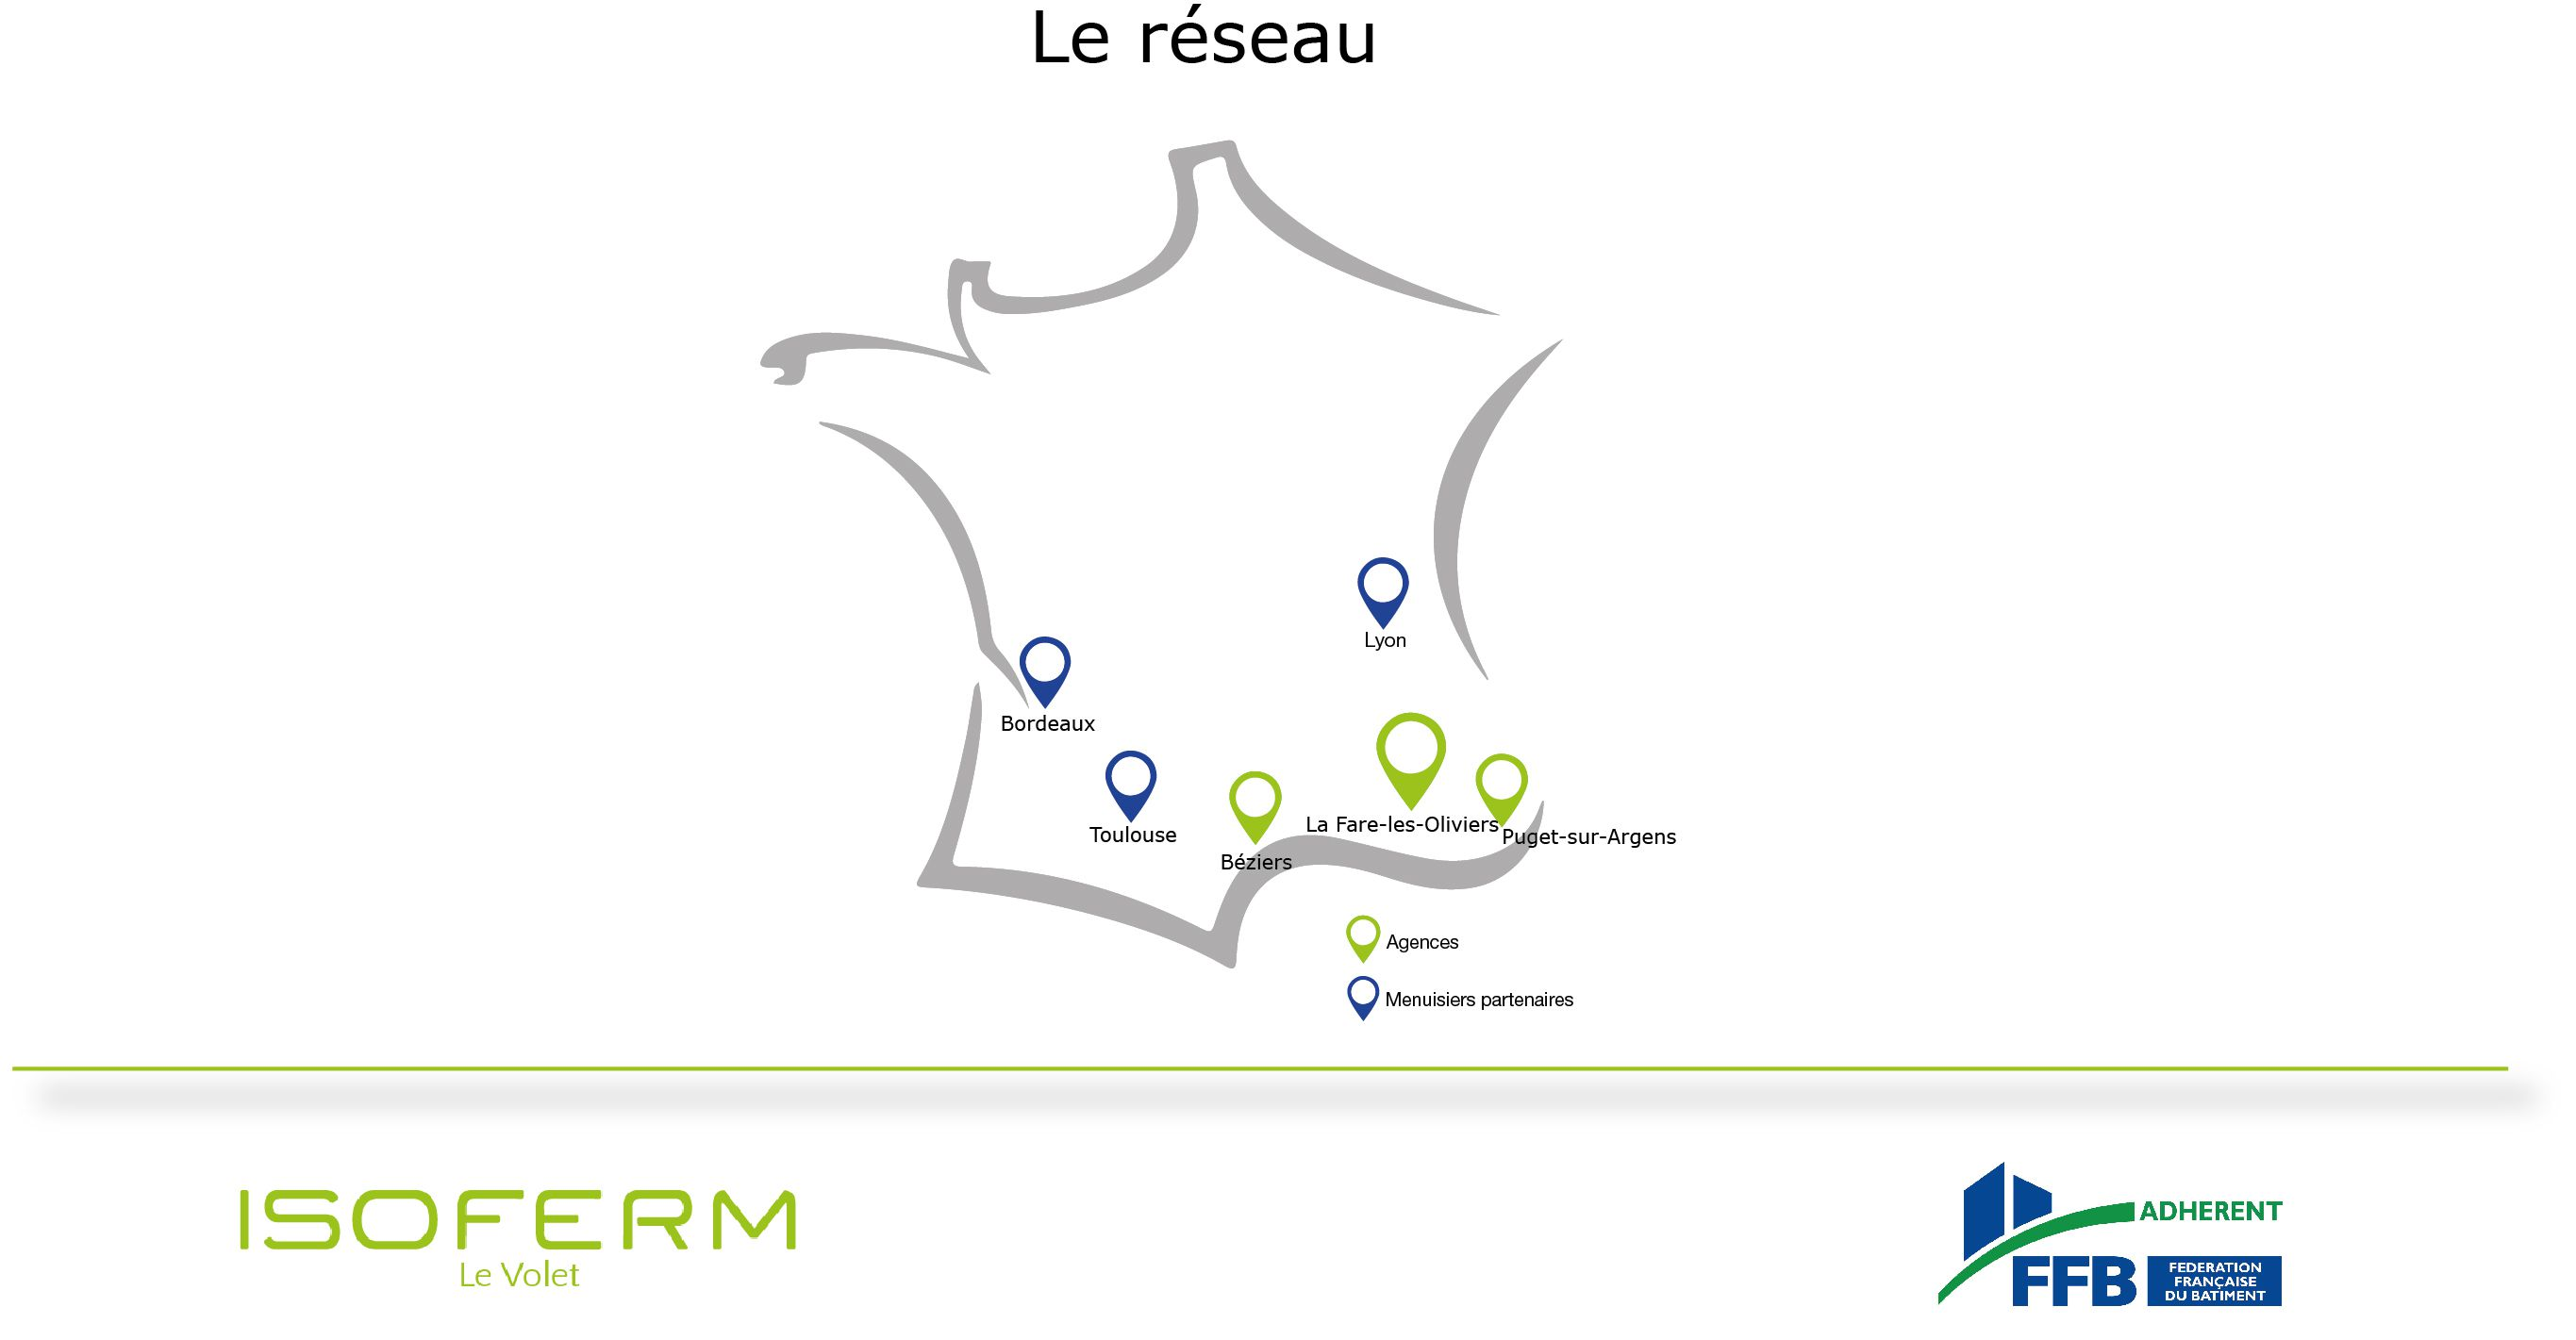 Carte réseau intervention isoferm